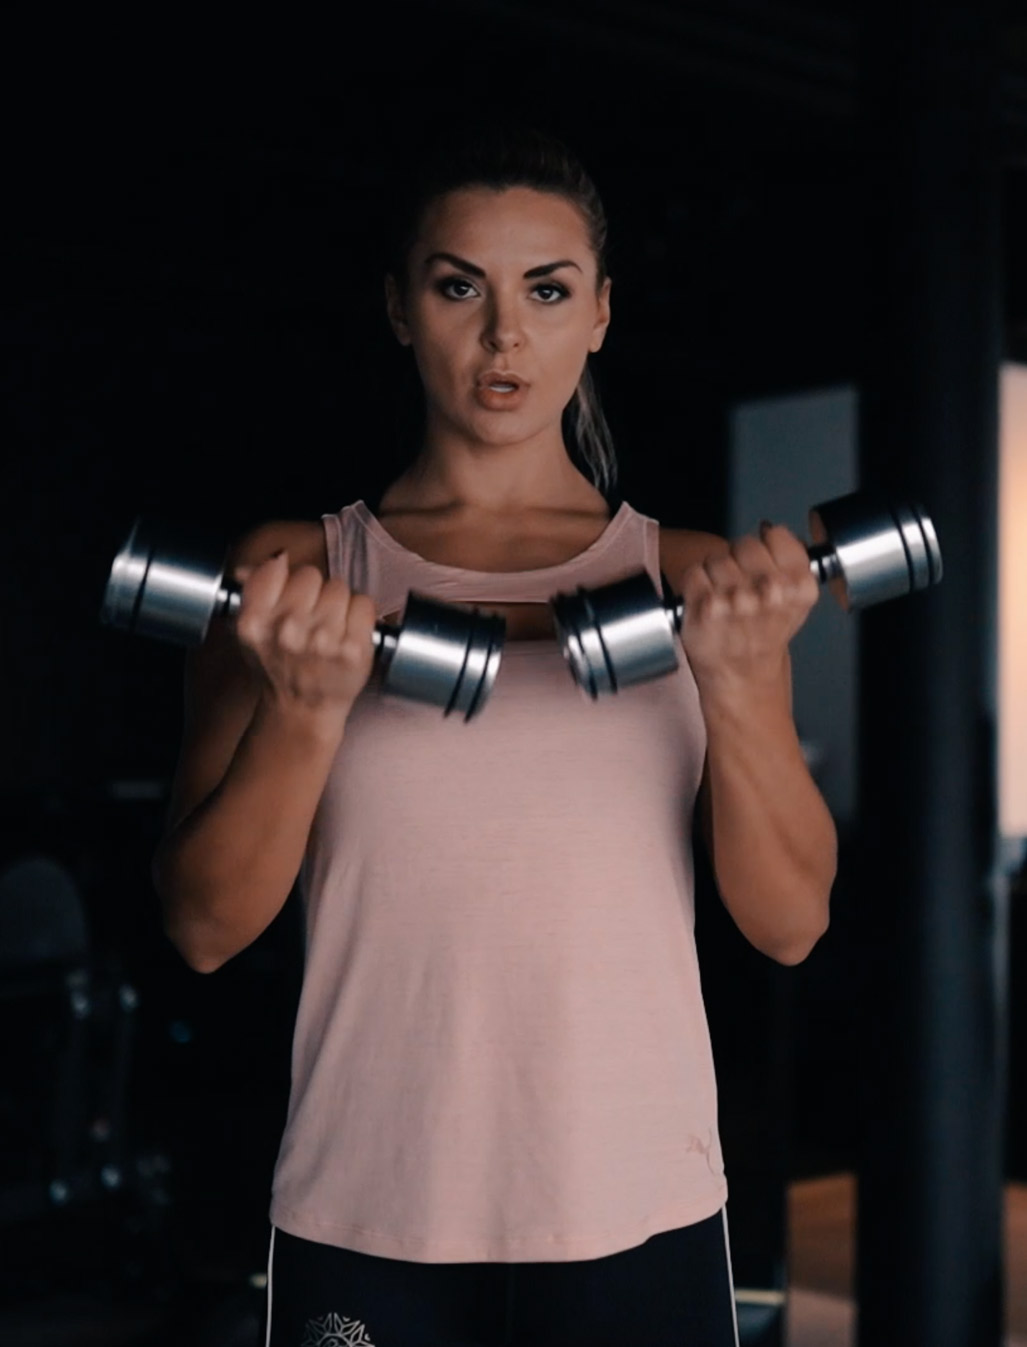 Julia working out with dumbbells